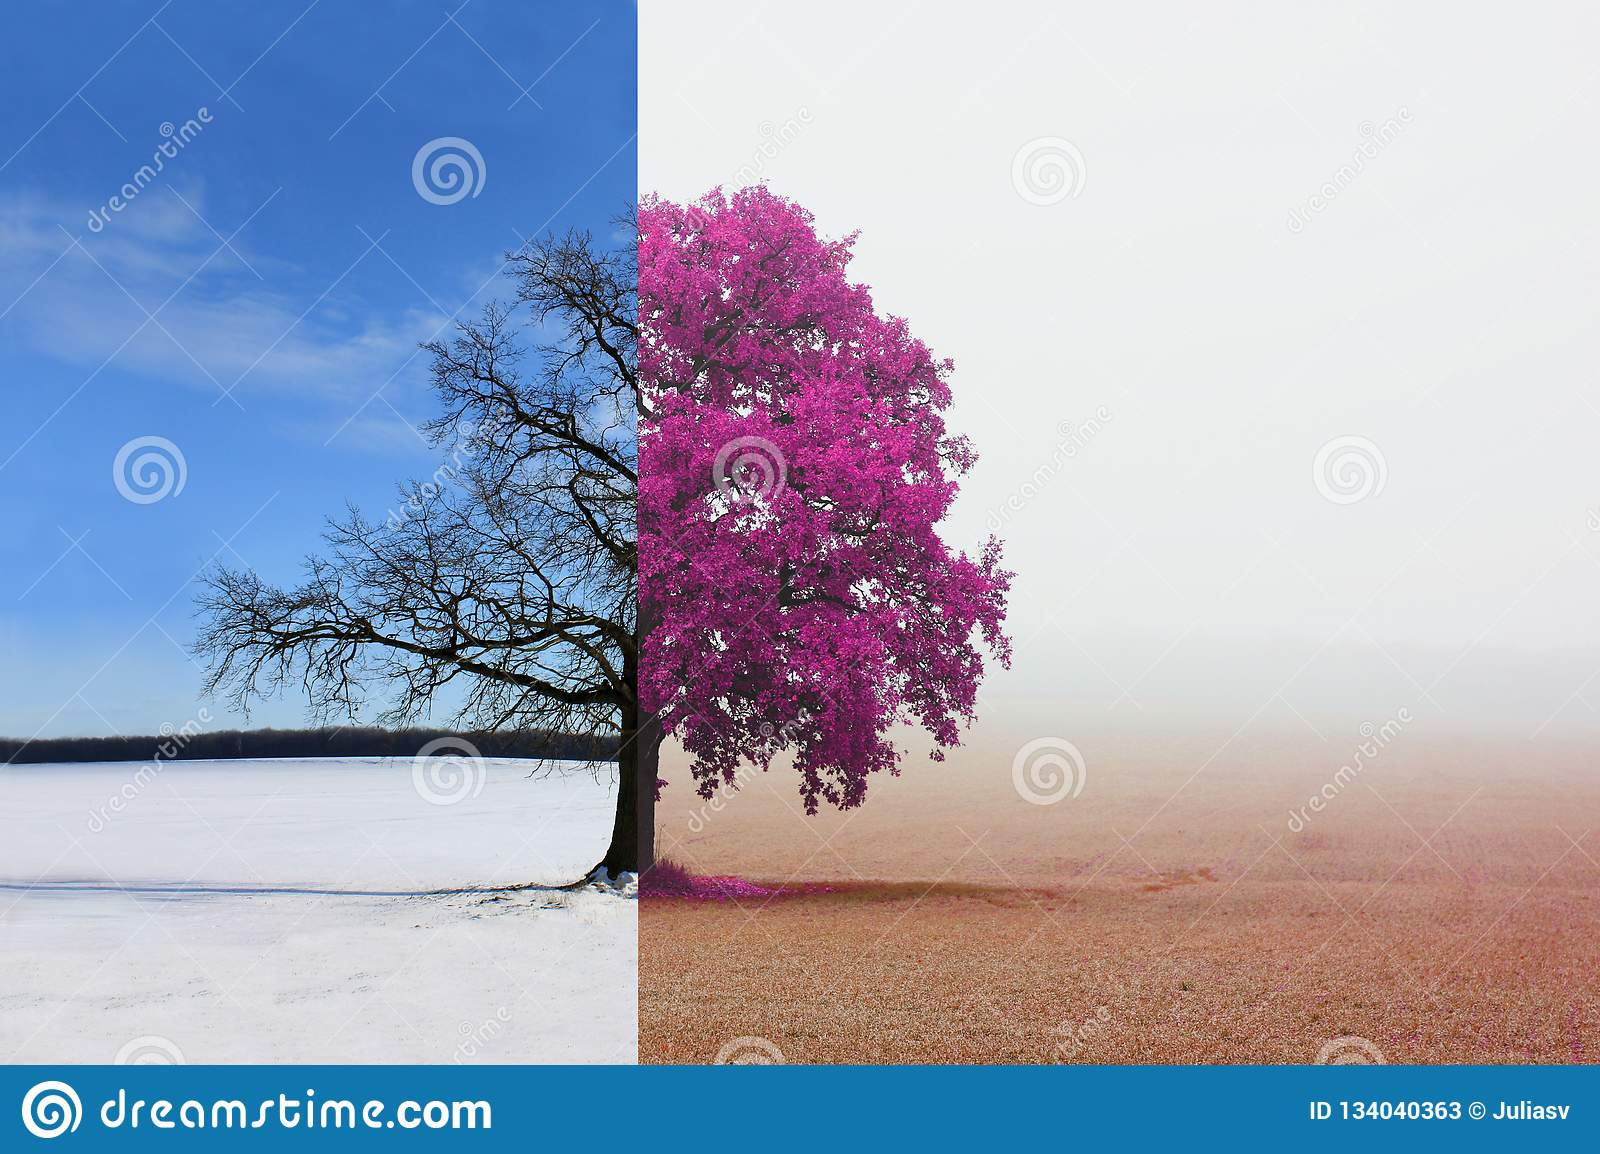 Different Sides Of Tree With Changing Seasons From Winter